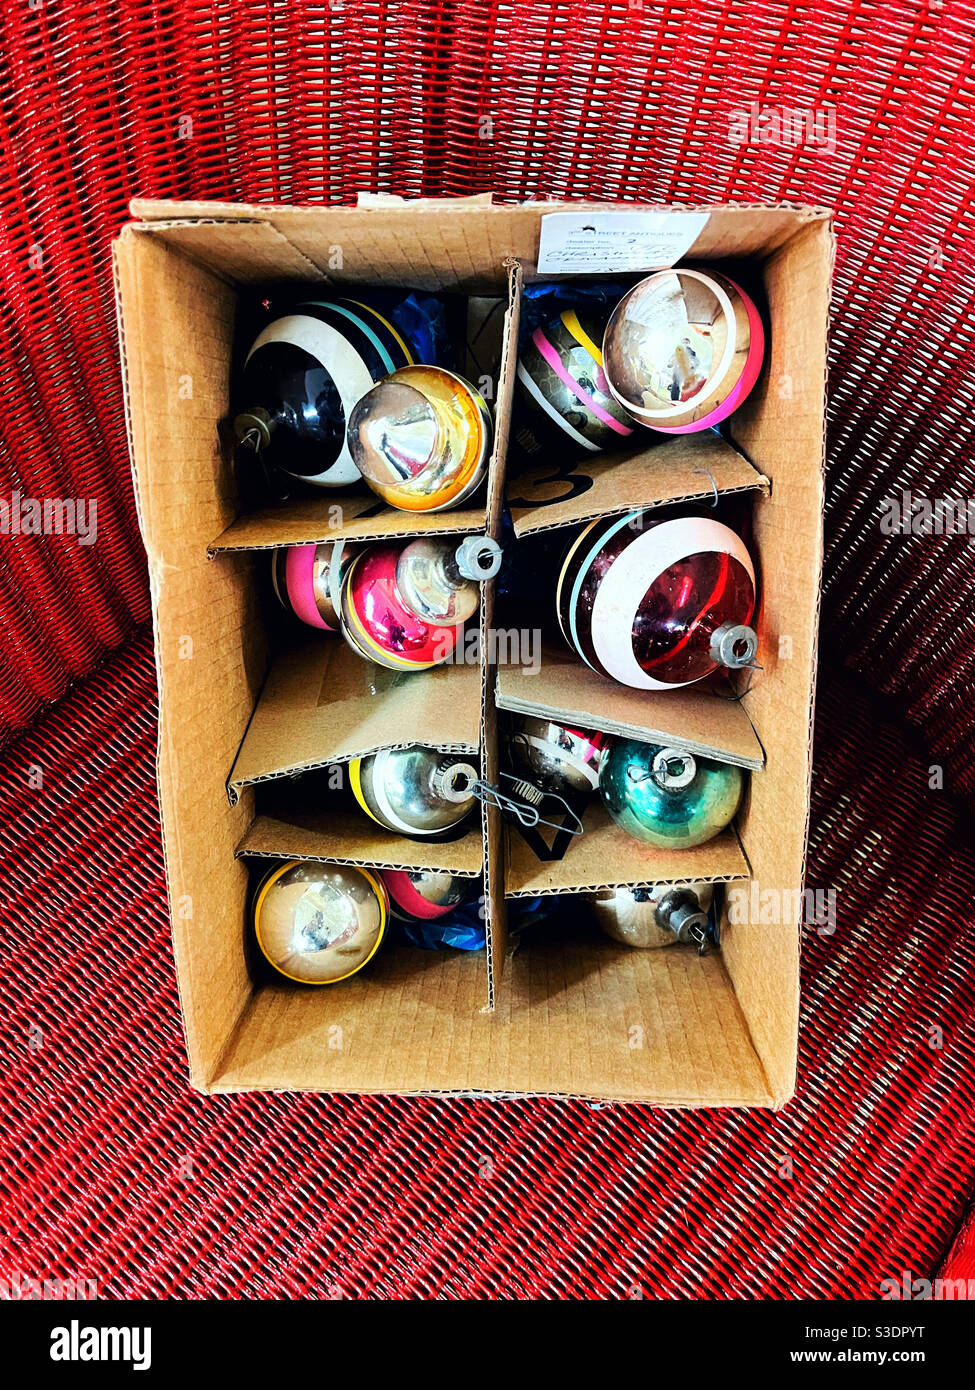 Vintage Christmas bubbles ornaments in and old cardboard box on red wicker chair Stock Photo